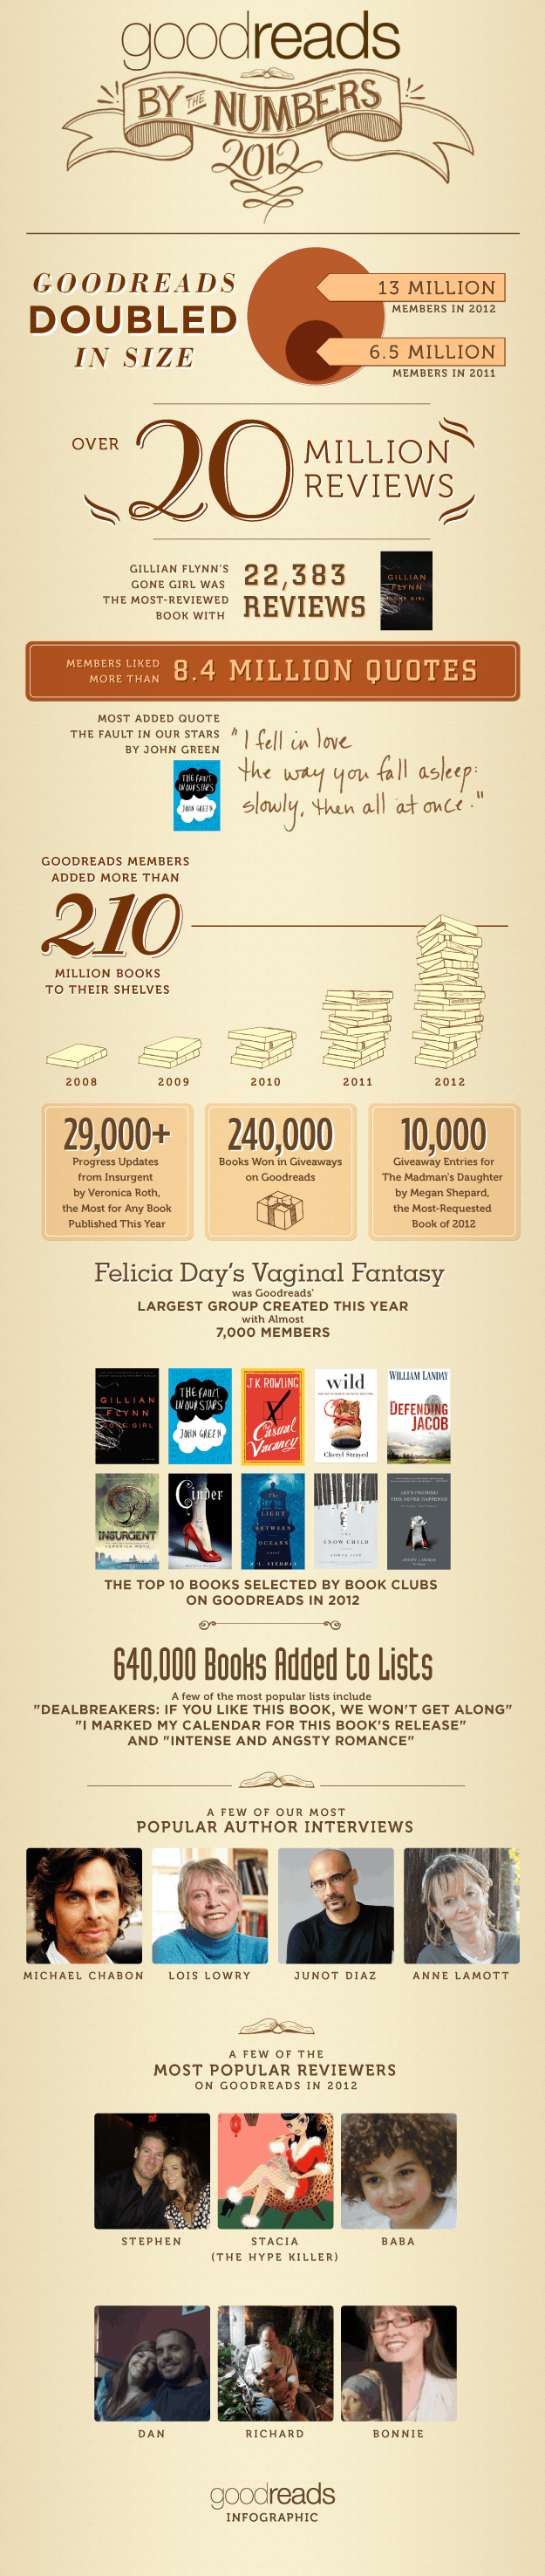 Infographic: Goodreads 2012 By the Numbers Infographic